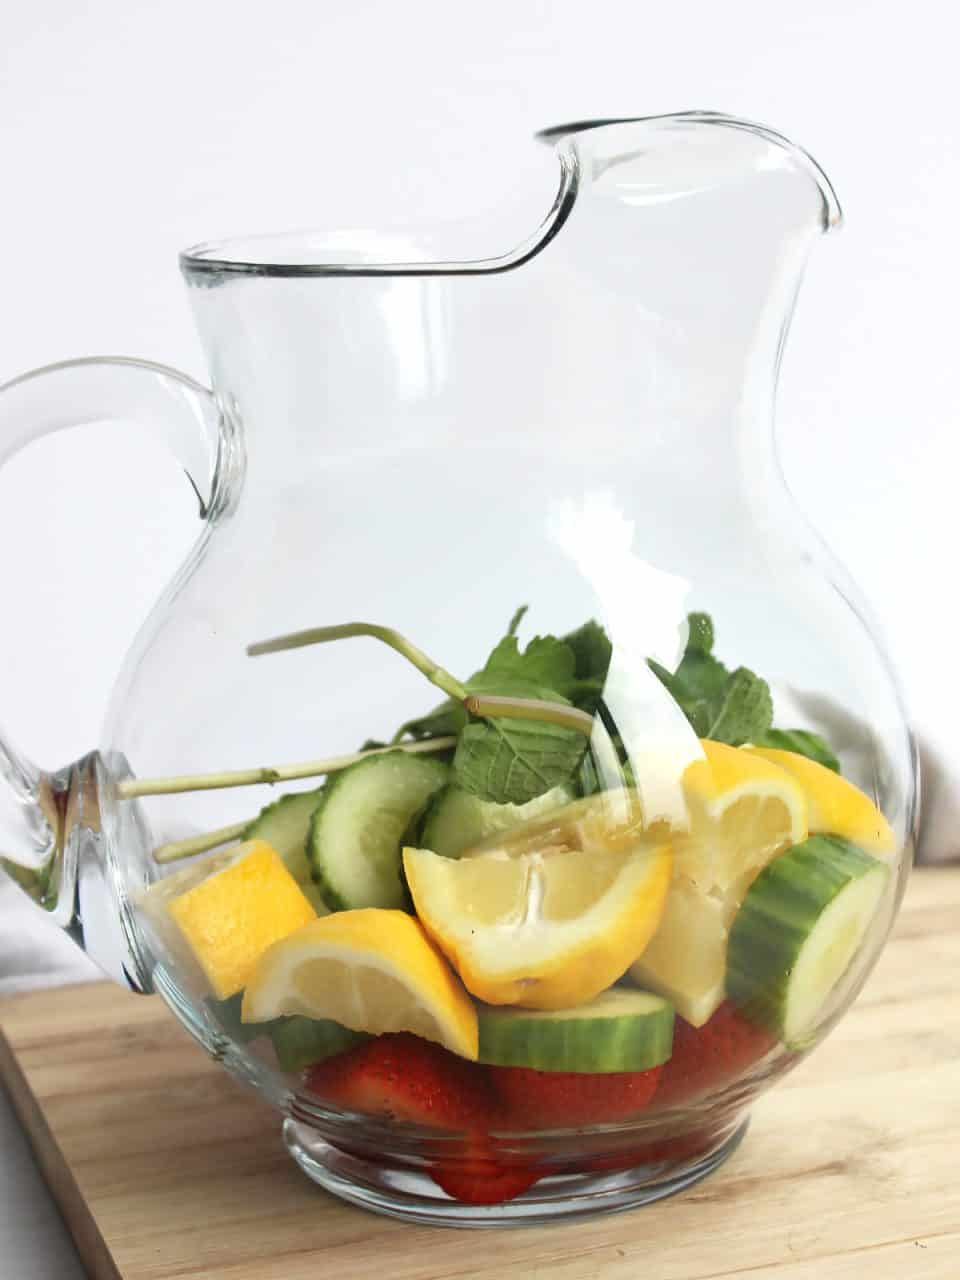 SLices of fresh fruit and mint leaves in a glass jug.